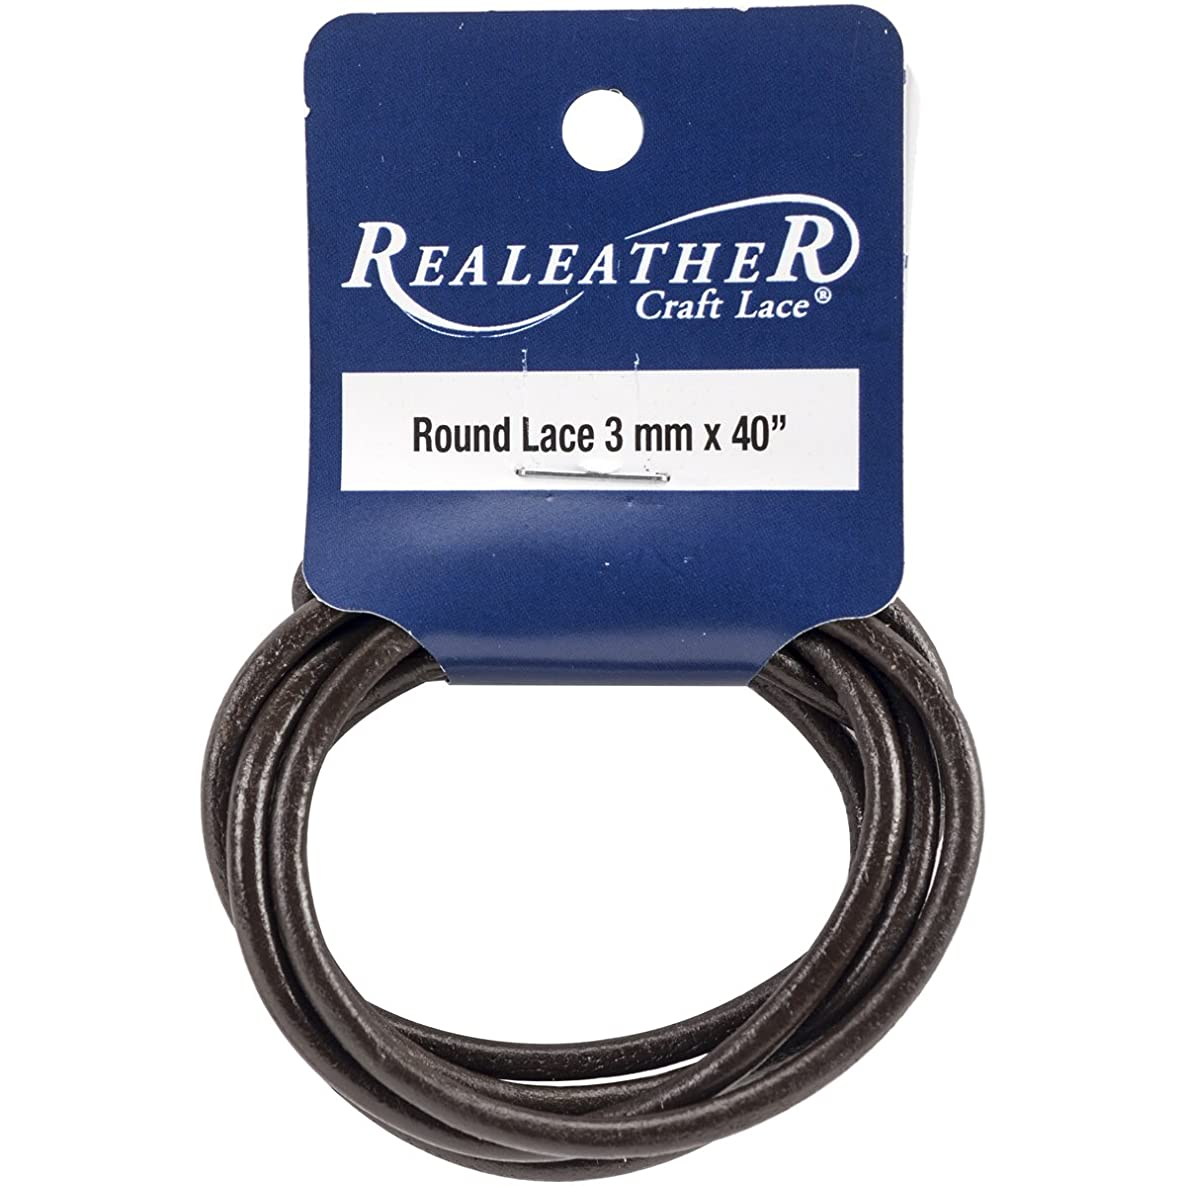 Realeather Crafts Round Leather Packaged Lace, 3mm by 40